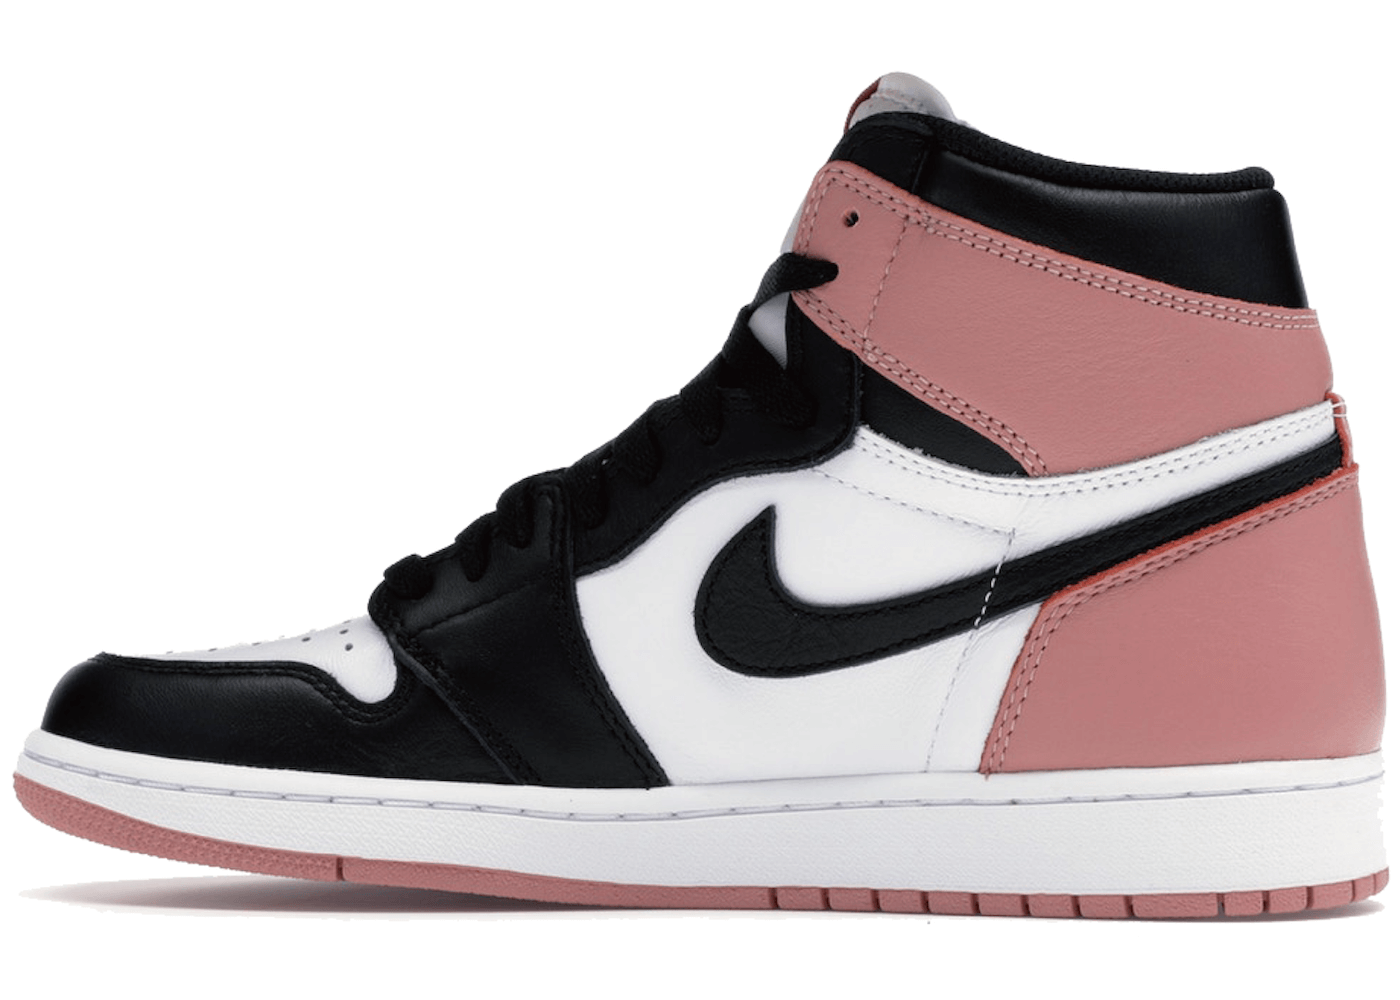 Jordan 1 Retro High Rust Pinkの写真